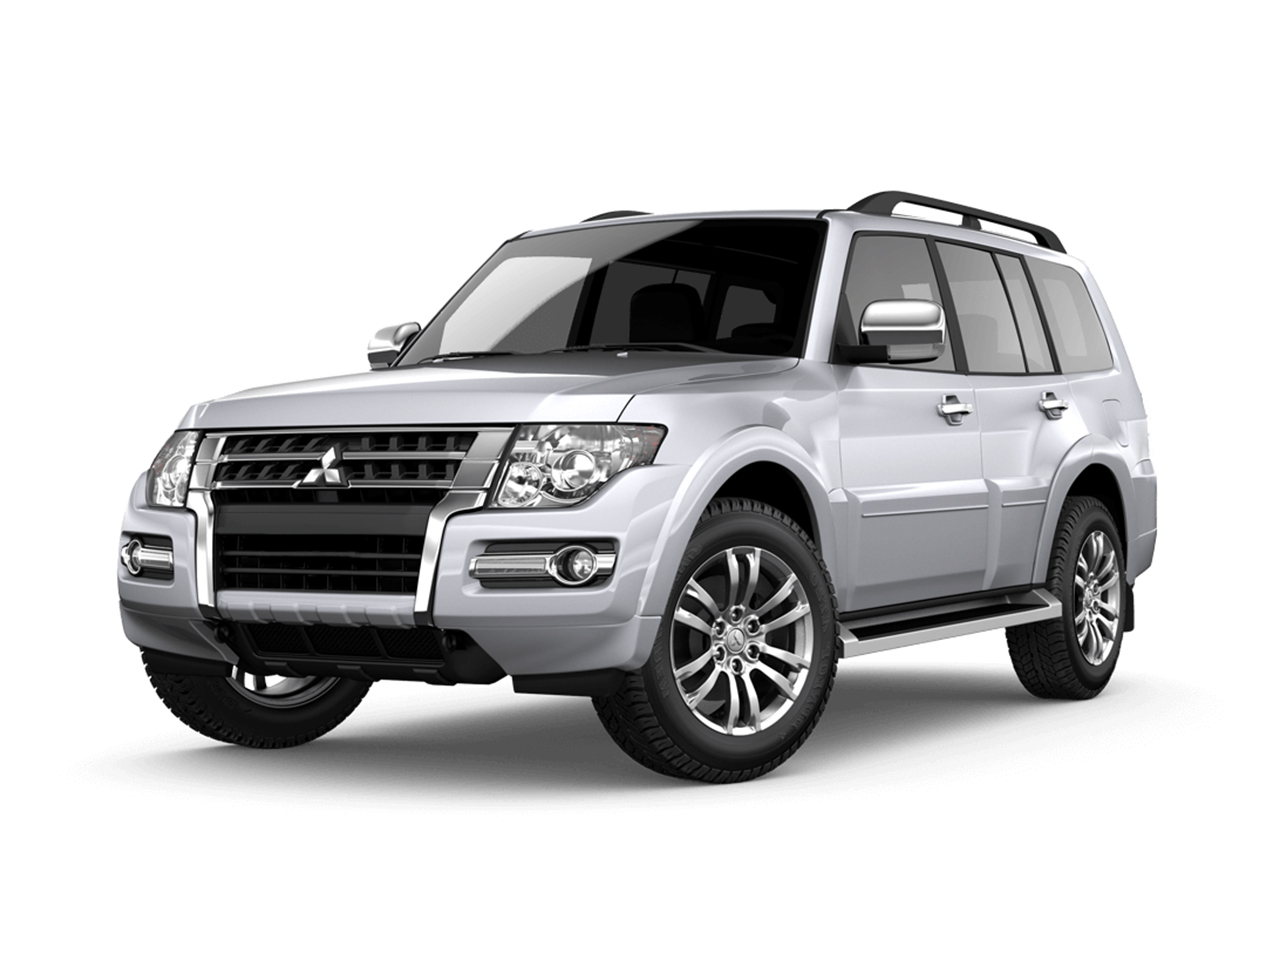 2018 Mitsubishi Pajero Prices In Uae Gulf Specs Amp Reviews